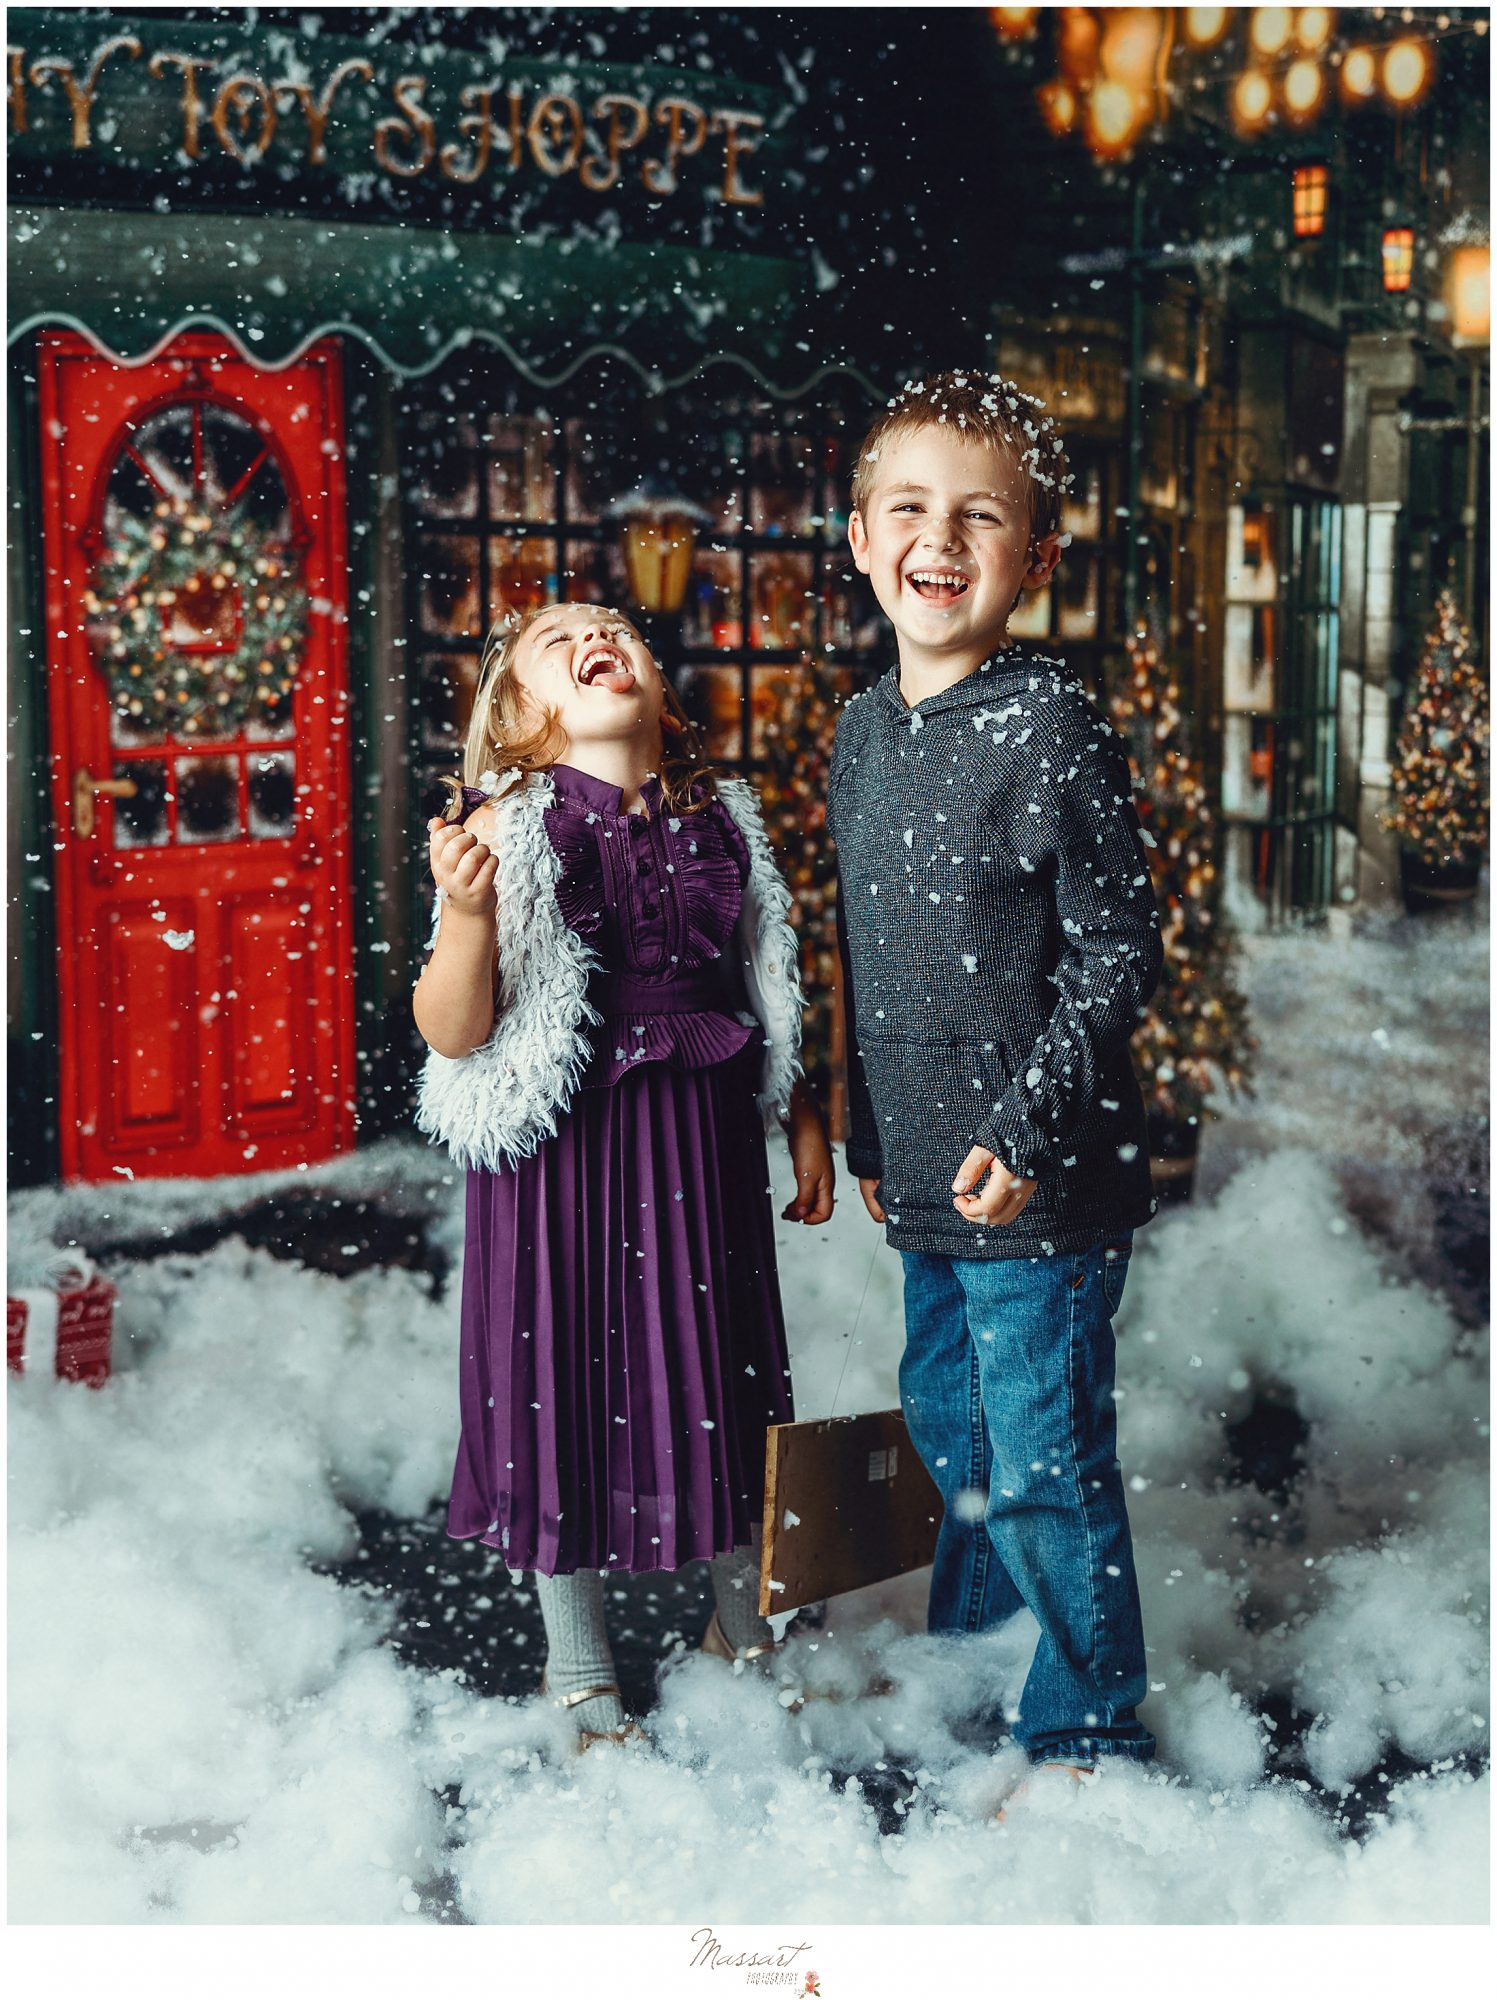 Kids play in snow during their christmas photos in RI